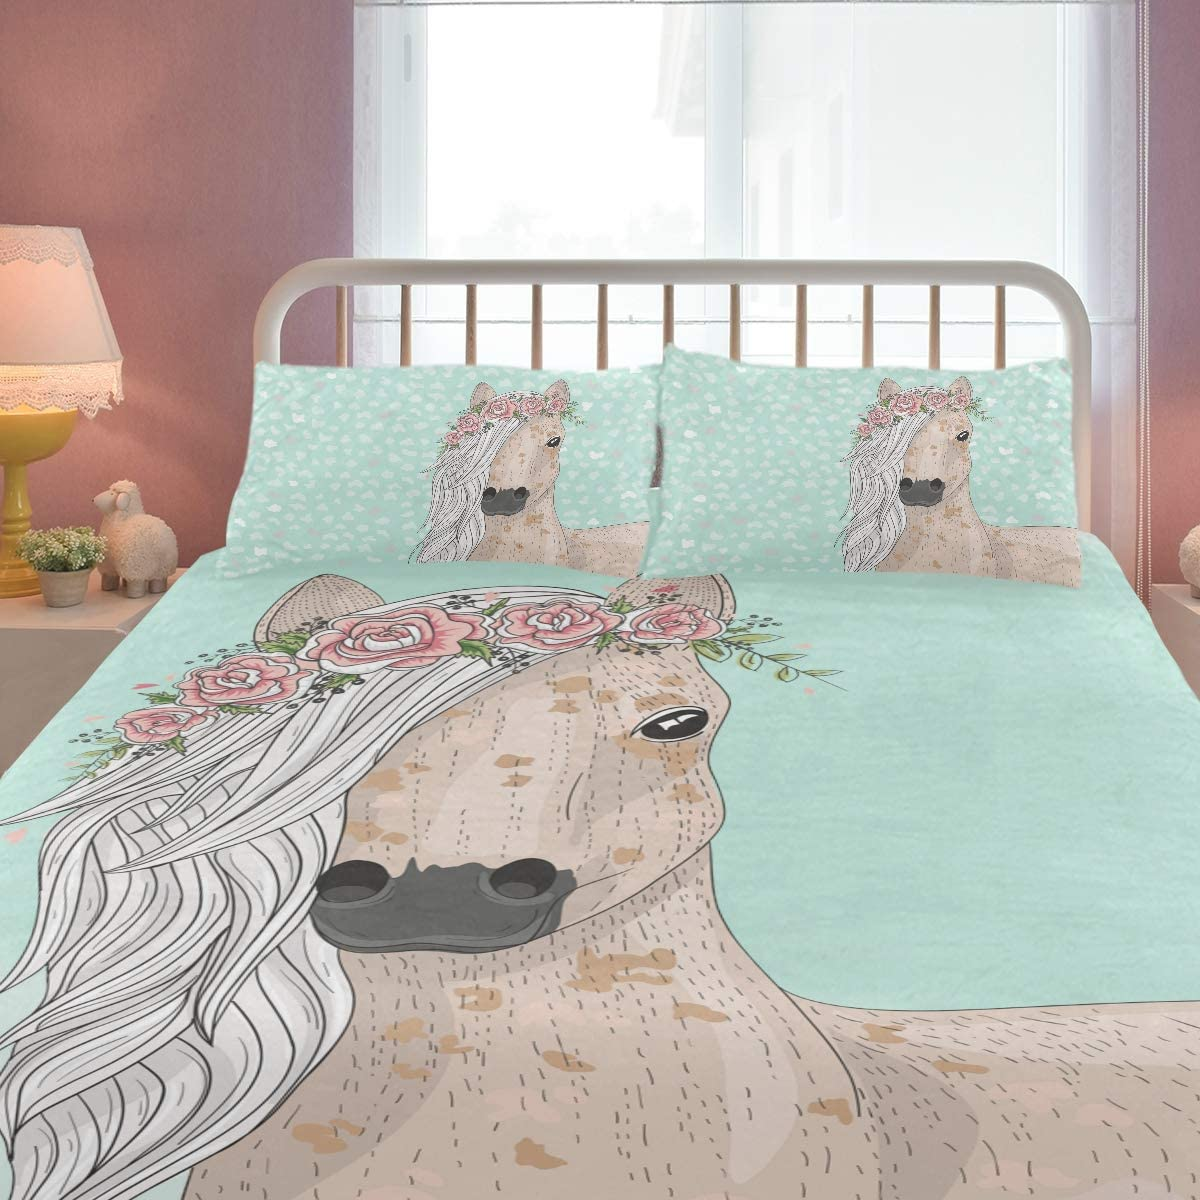 Zoeo Pony Twin Bedding Set Blue Horse Heart Wedding Floral Bed Sets Cartoon Cute Duvet Cover Pillow Cover Set 3 Pieces For Girls Teens Women Home Kitchen